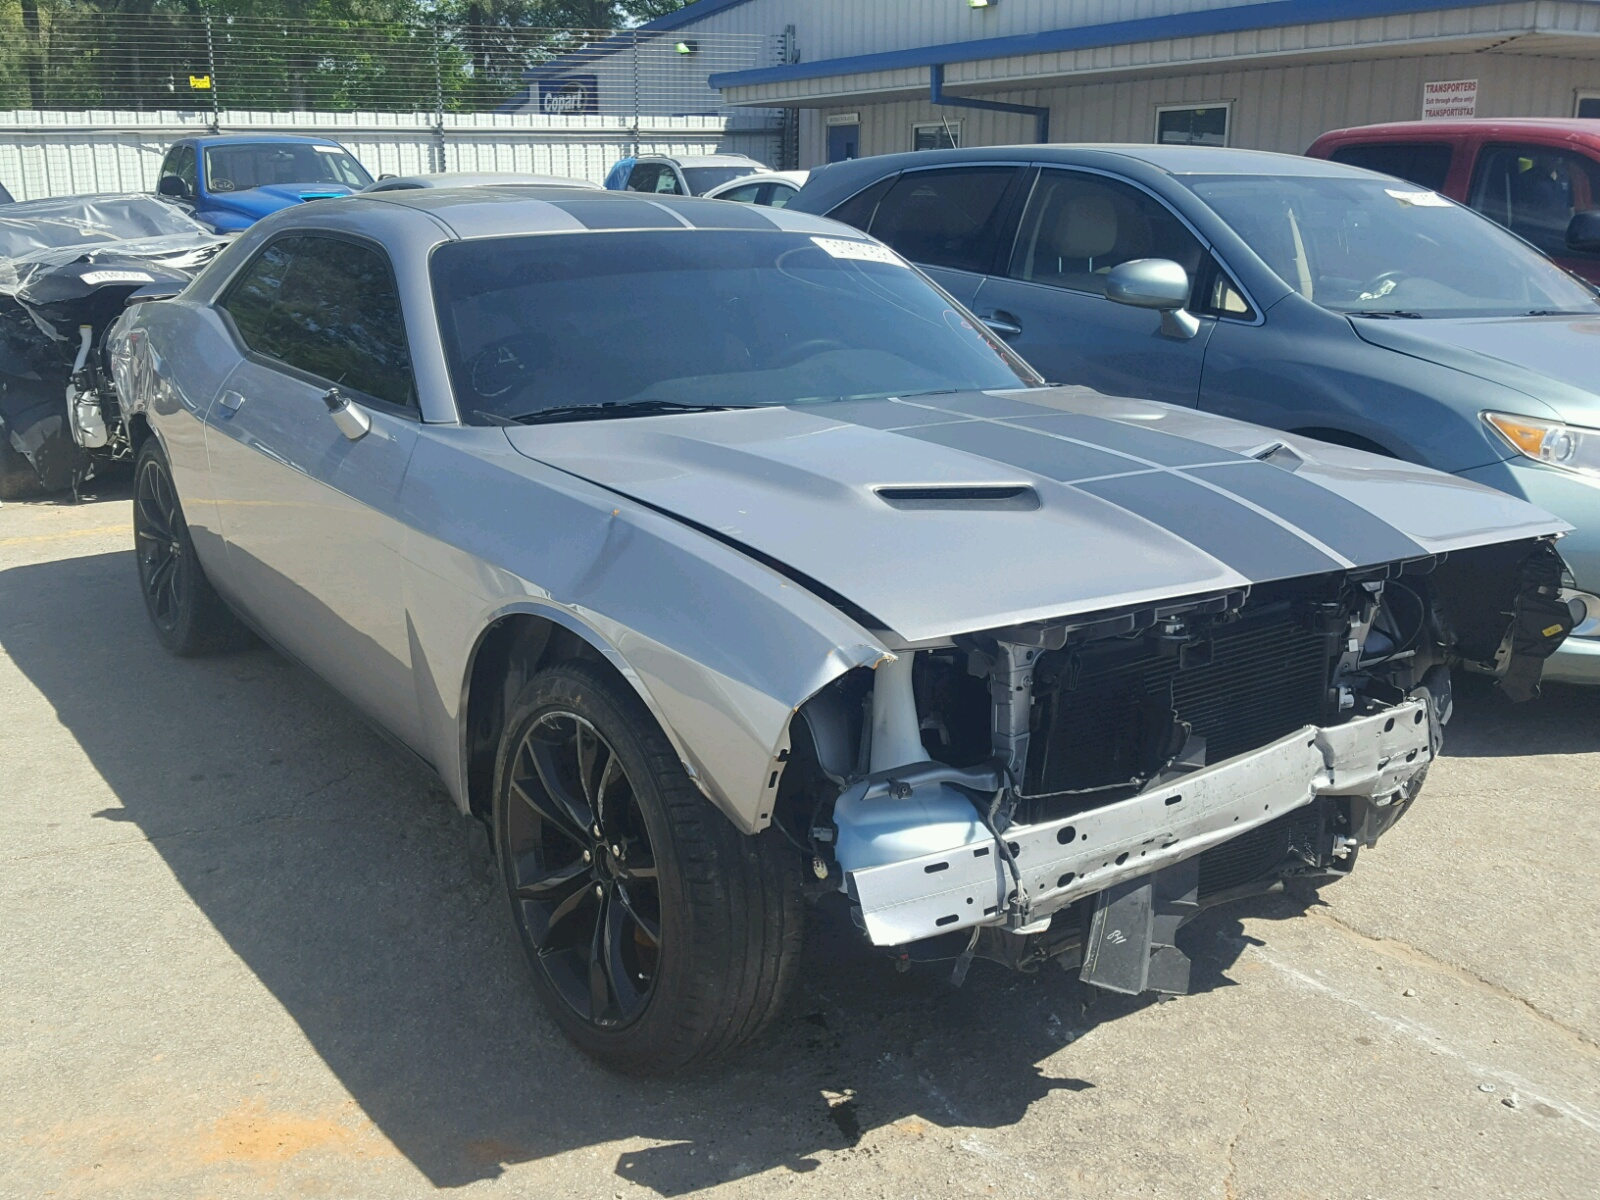 Salvaged DODGE CHALLENGER for Auction - AutoBidMaster